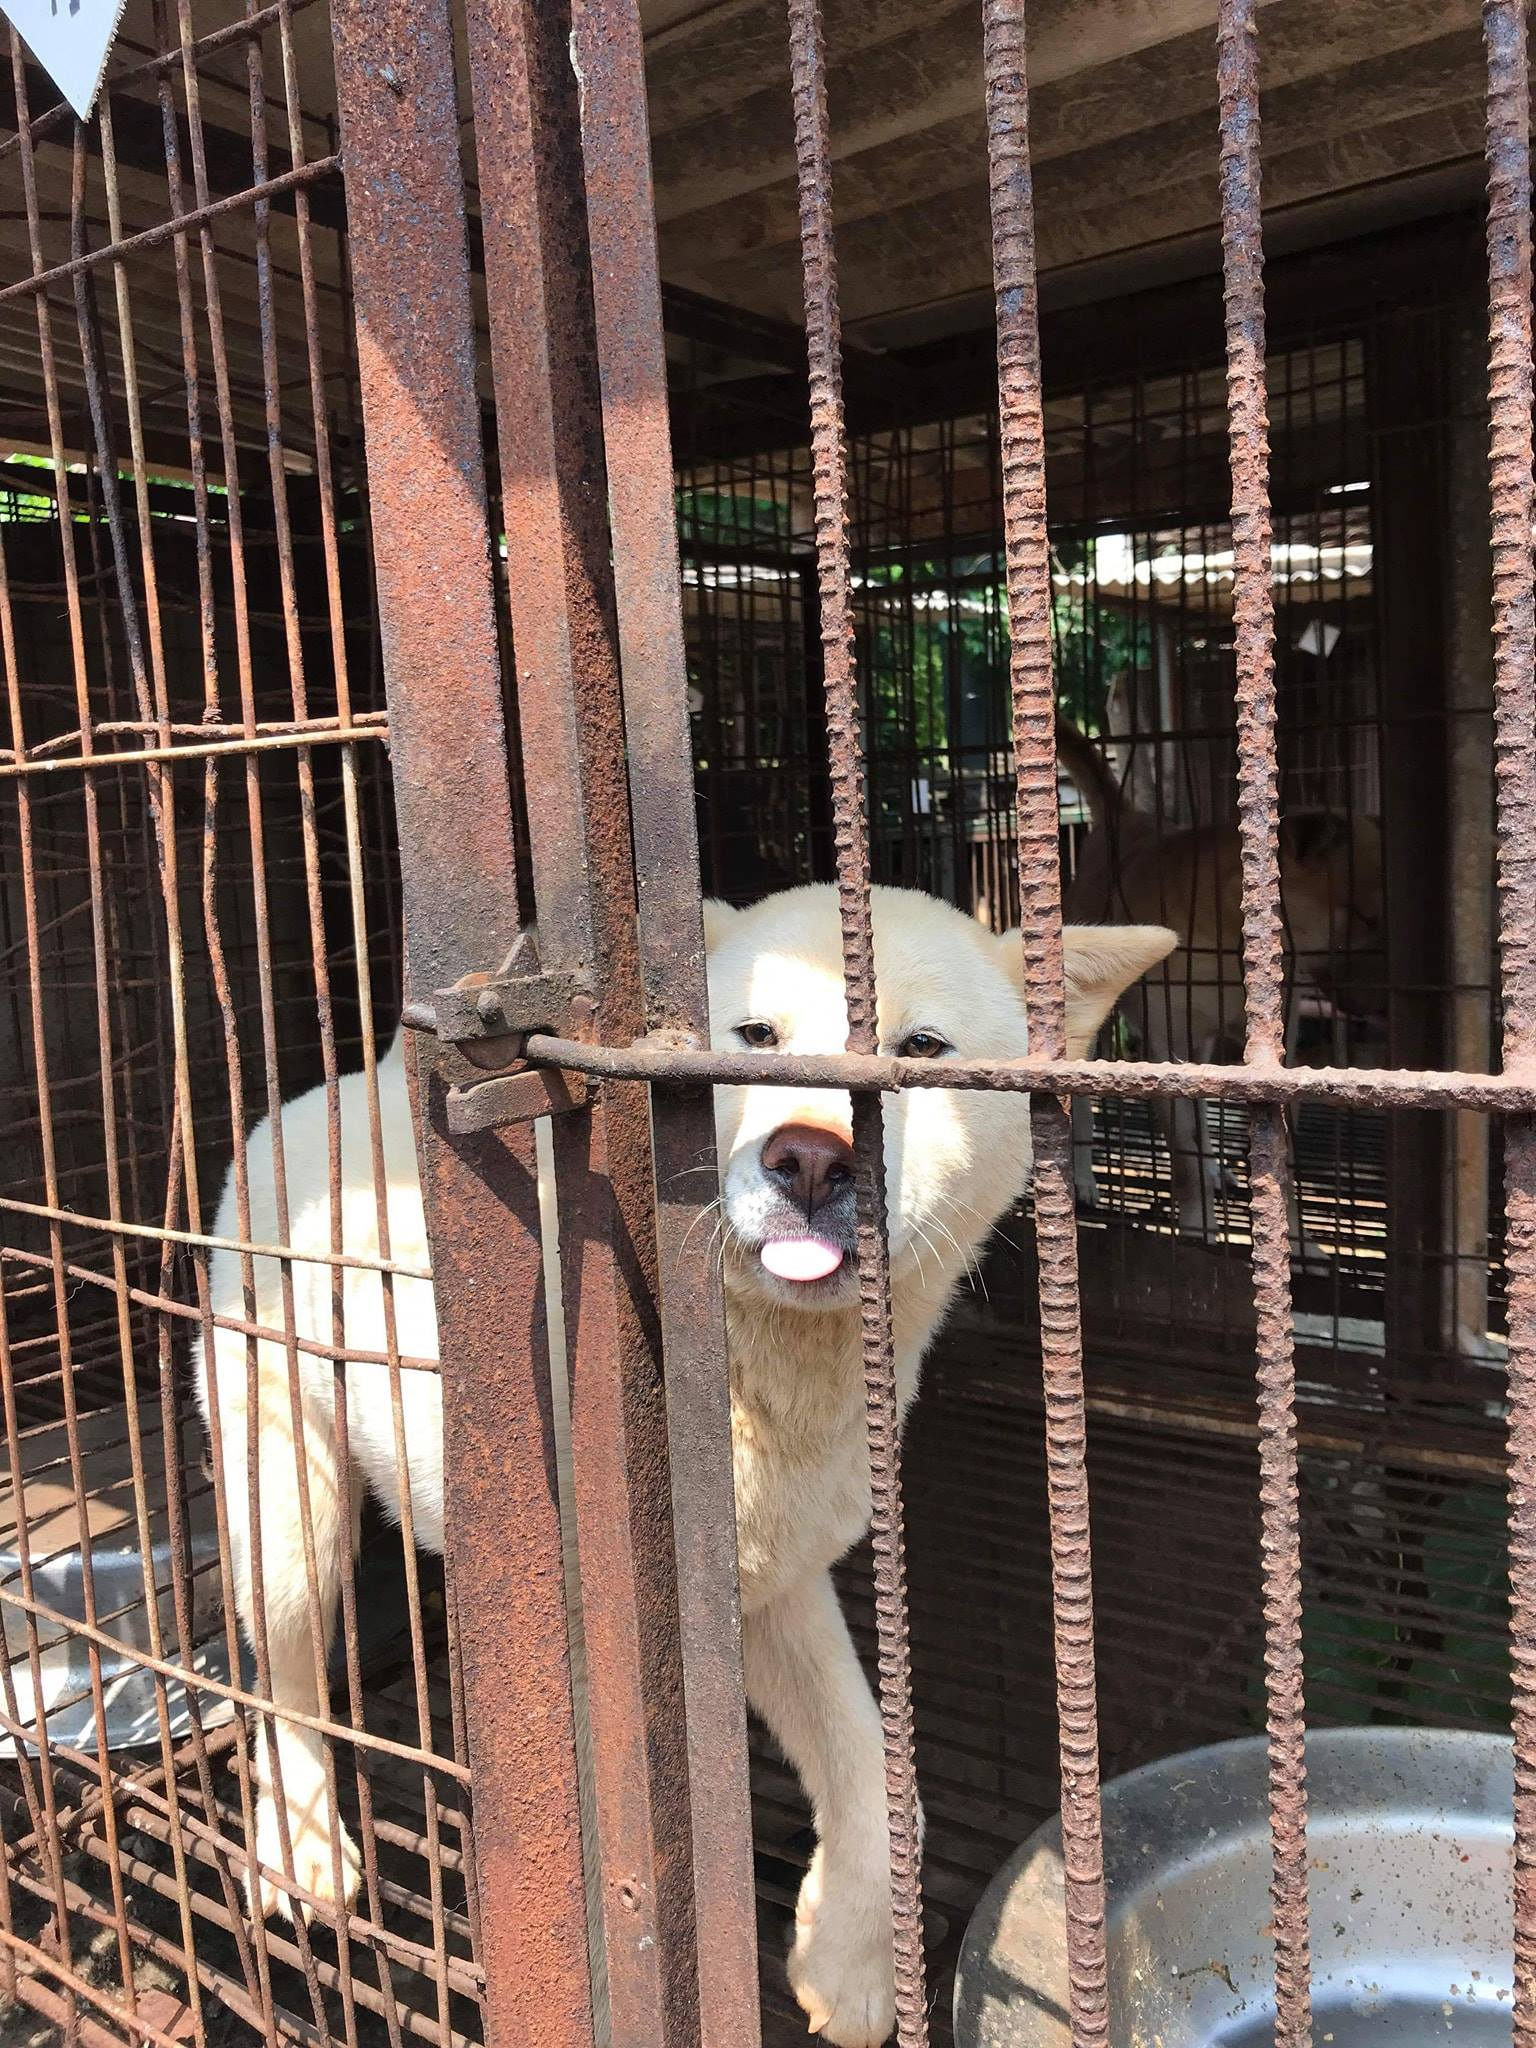 https://www.facebook.com/SaveKoreanDogs/posts/1126567190826673?utm_source=sendinblue&utm_campaign=URGENT__DEADLINES_APPROACHING_Clicks_for_2_Official_Korean_Government_Petitions_against_Dog_and_Cat_Meat_Consumption!&utm_medium=email